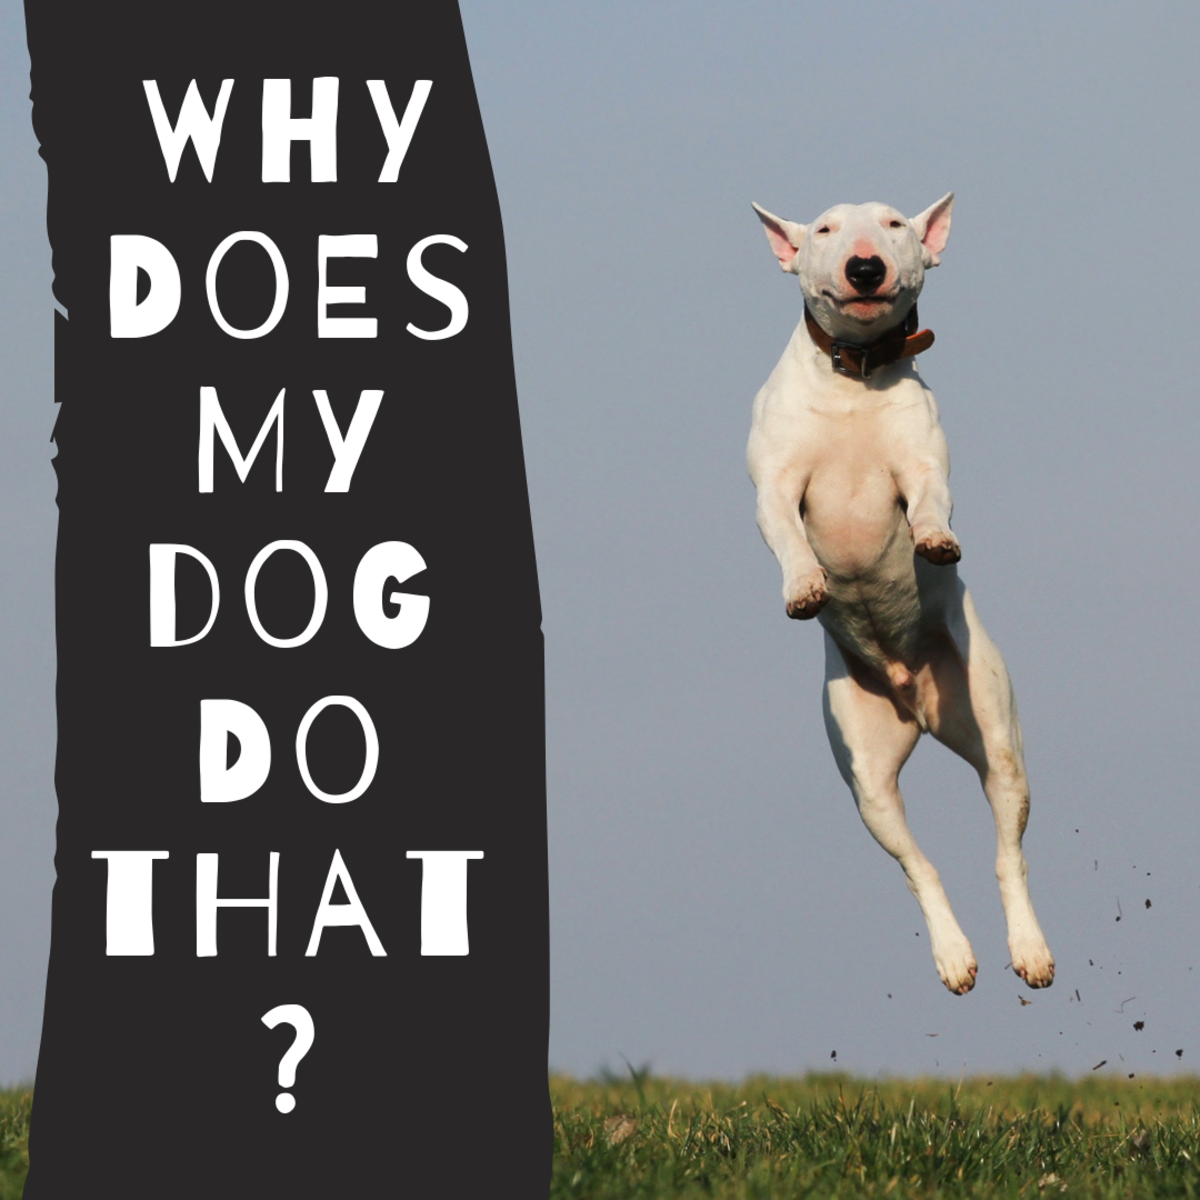 Dog Behavior: Why Dogs Behave in Certain Ways